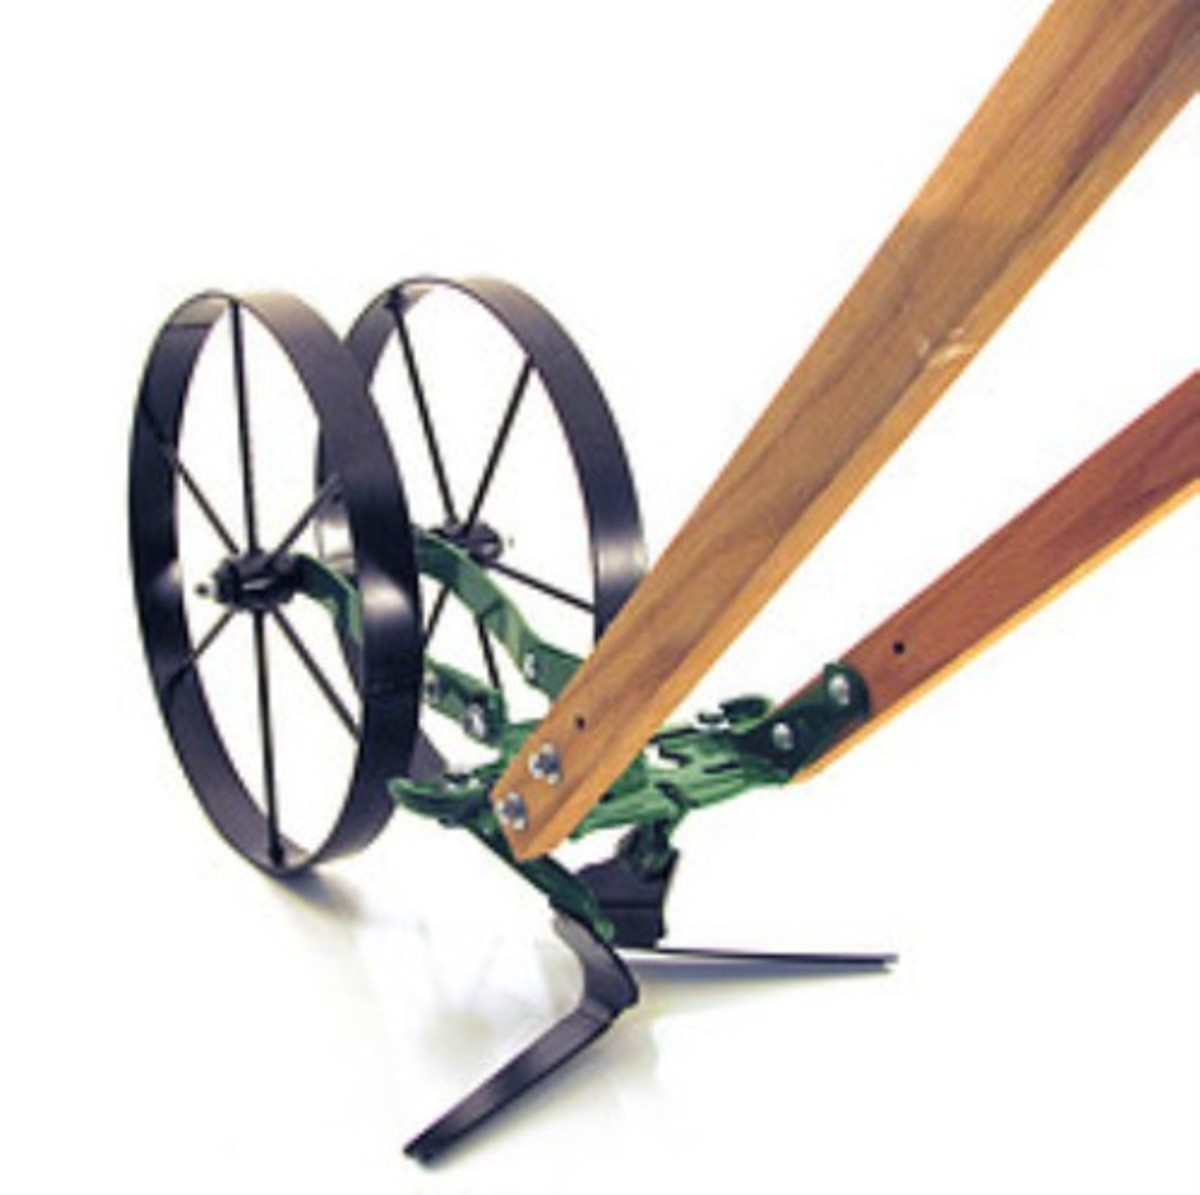 Double Wheel Hoe allows you to straddle new crops to cultivate on either side.